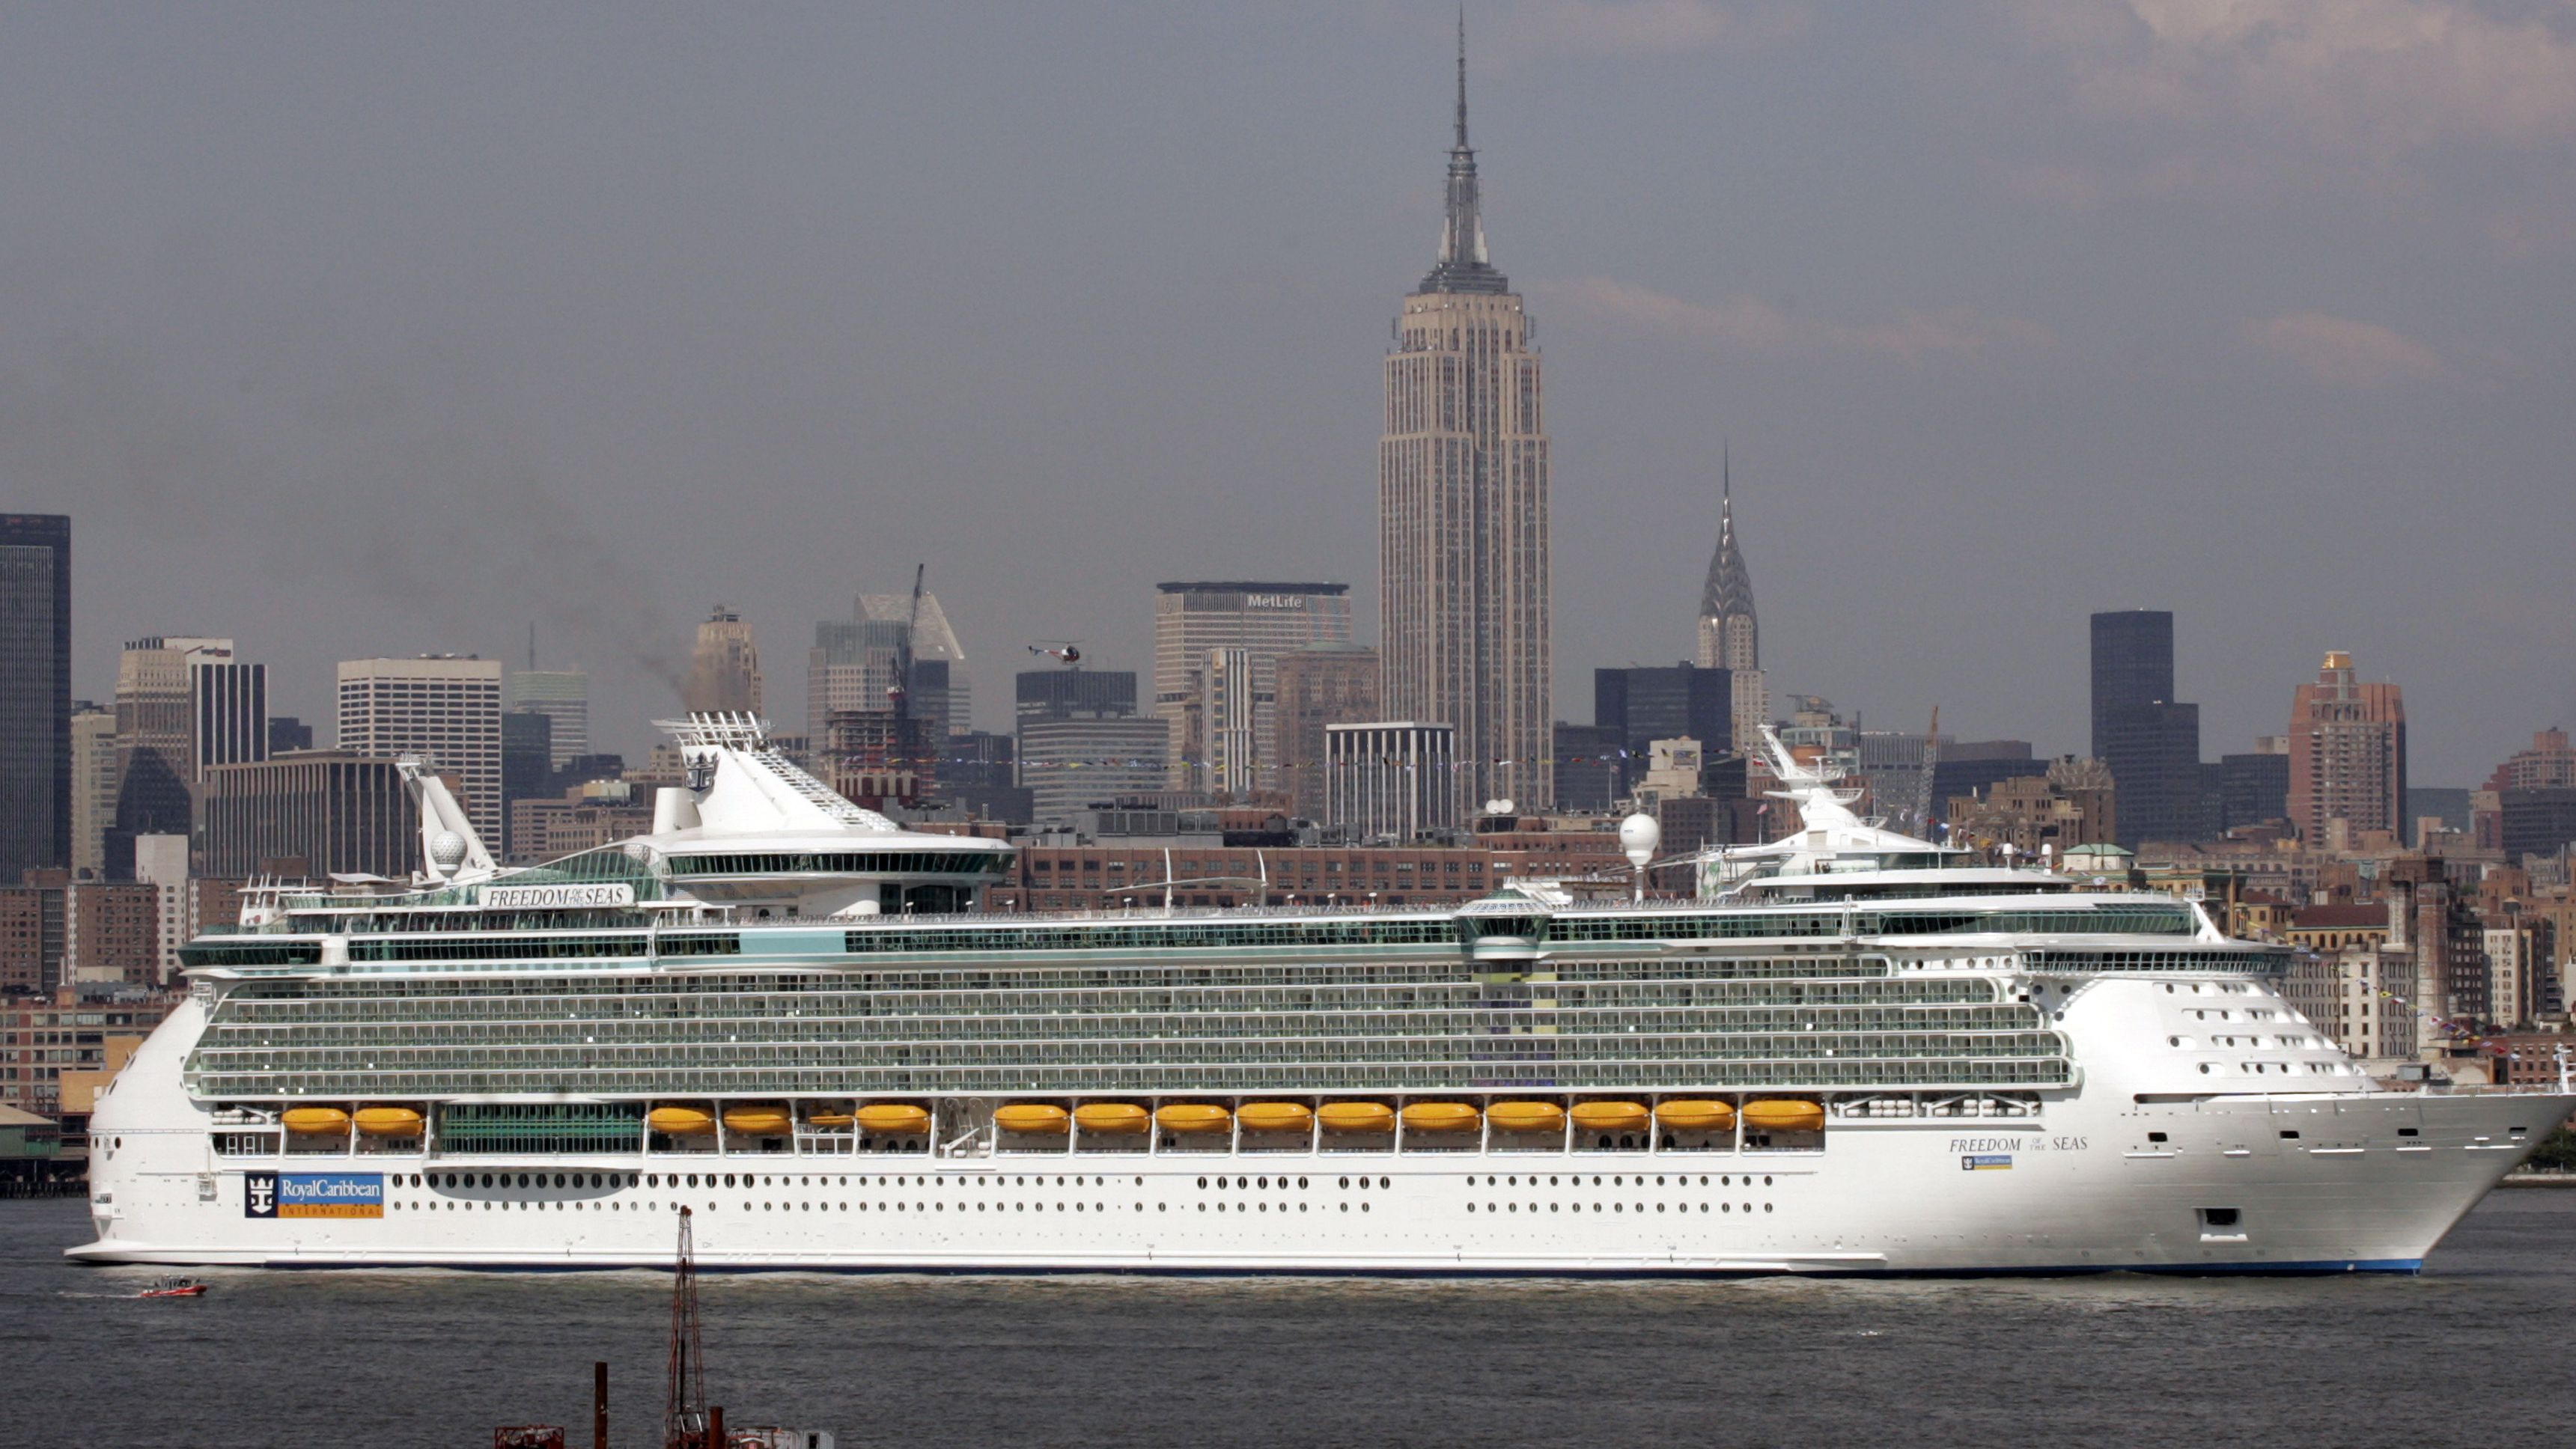 The Cruise ship 'Freedom of the Seas' makes its way down New York Harbor